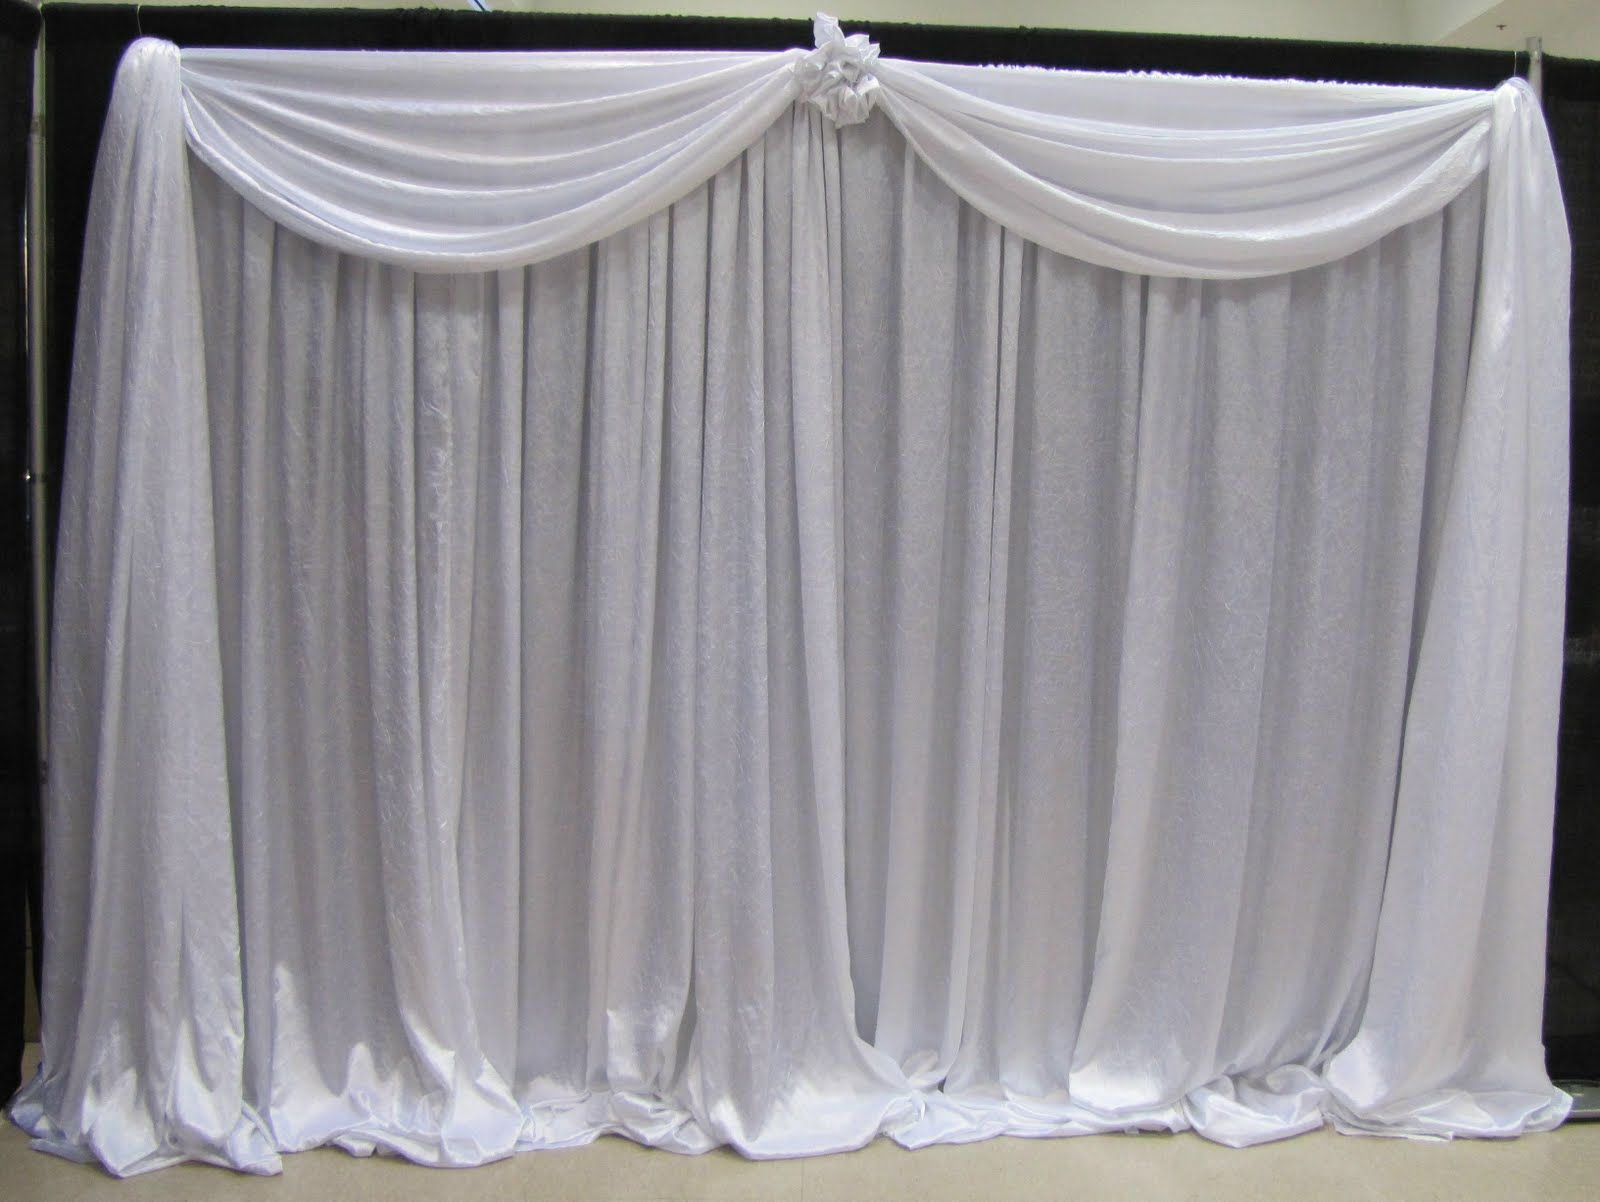 Wedding Backdrops Wholesale Drapes And Curtains For Weddings Backdrop Rk Pipe And Drape